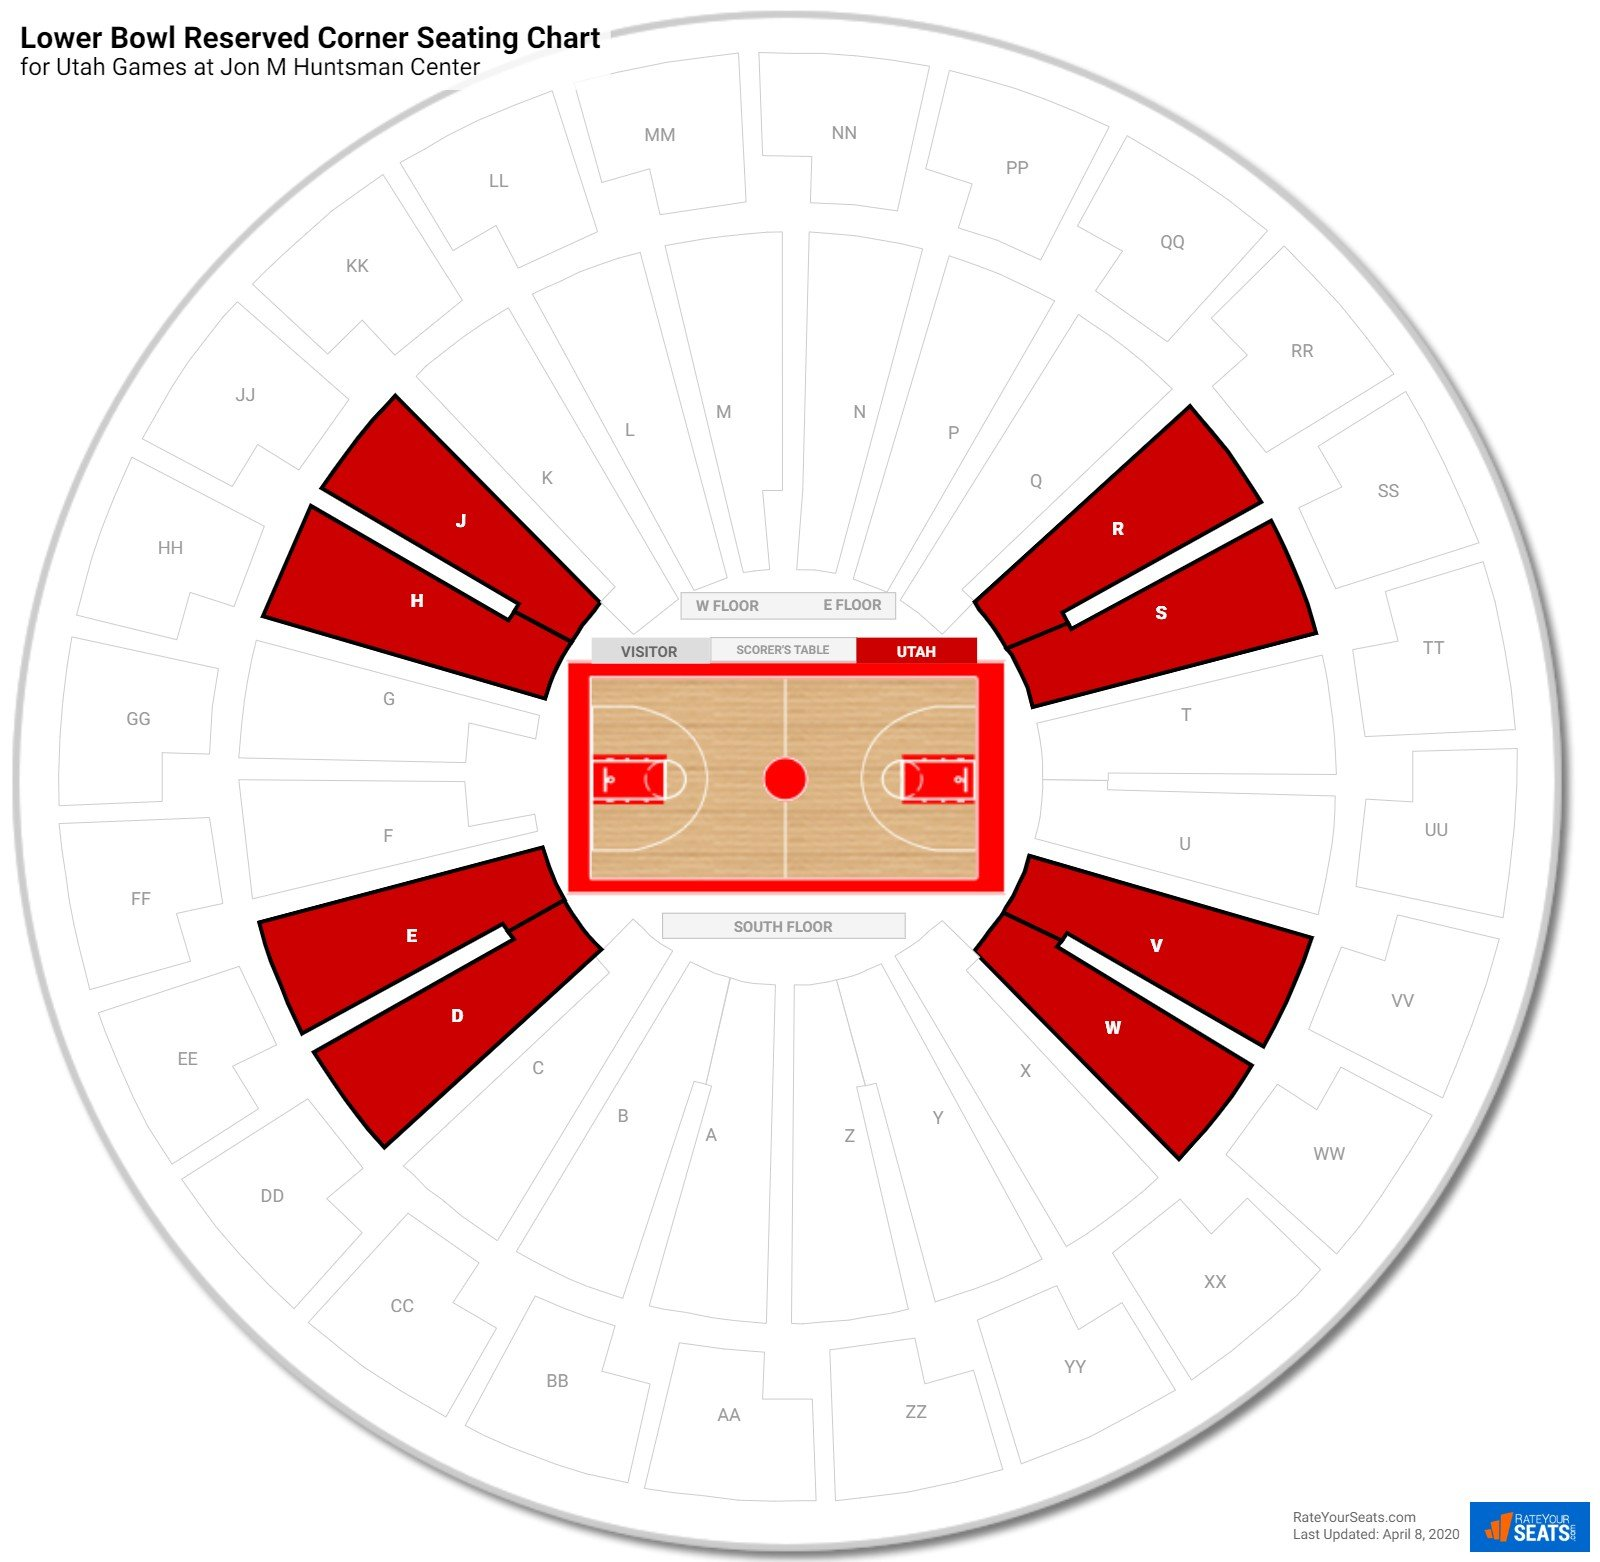 Jon M Huntsman Center Lower Corner seating chart